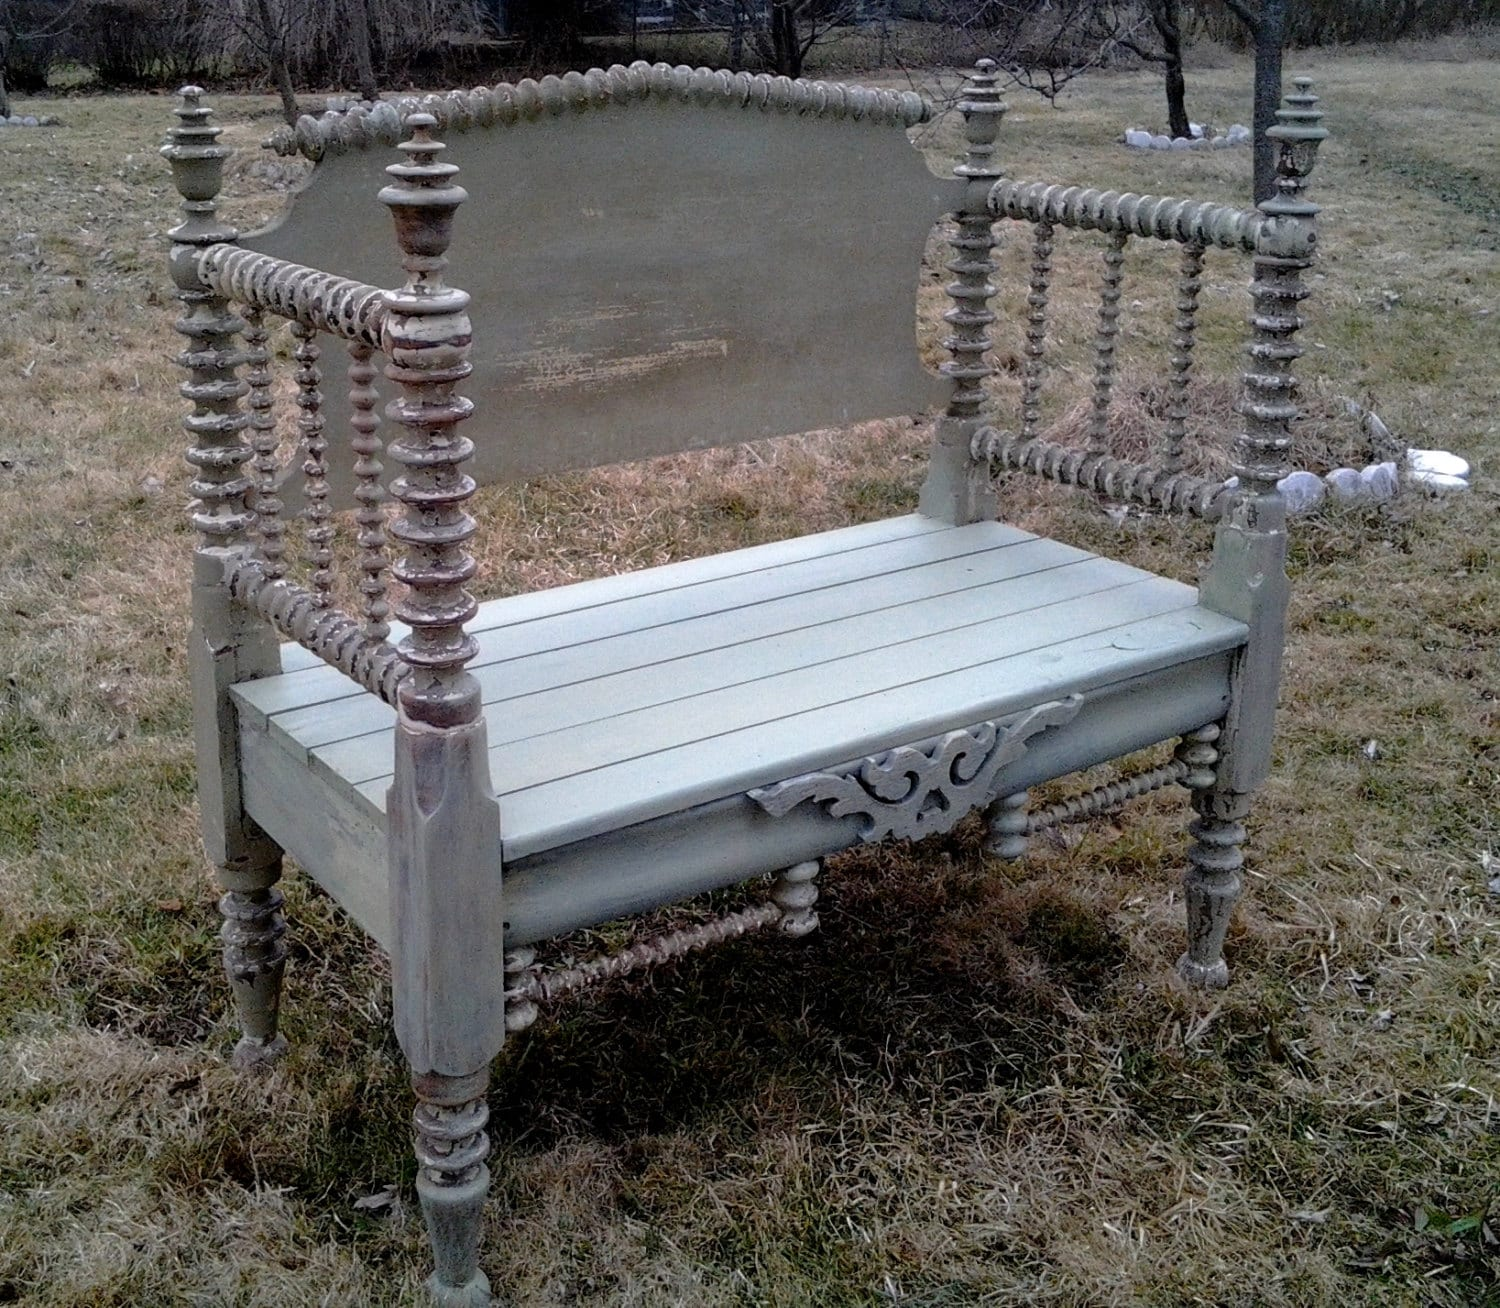 Antique Headboard Bench: Bench Made From Vintage Spindle Headboard Up Cycled By MandWs